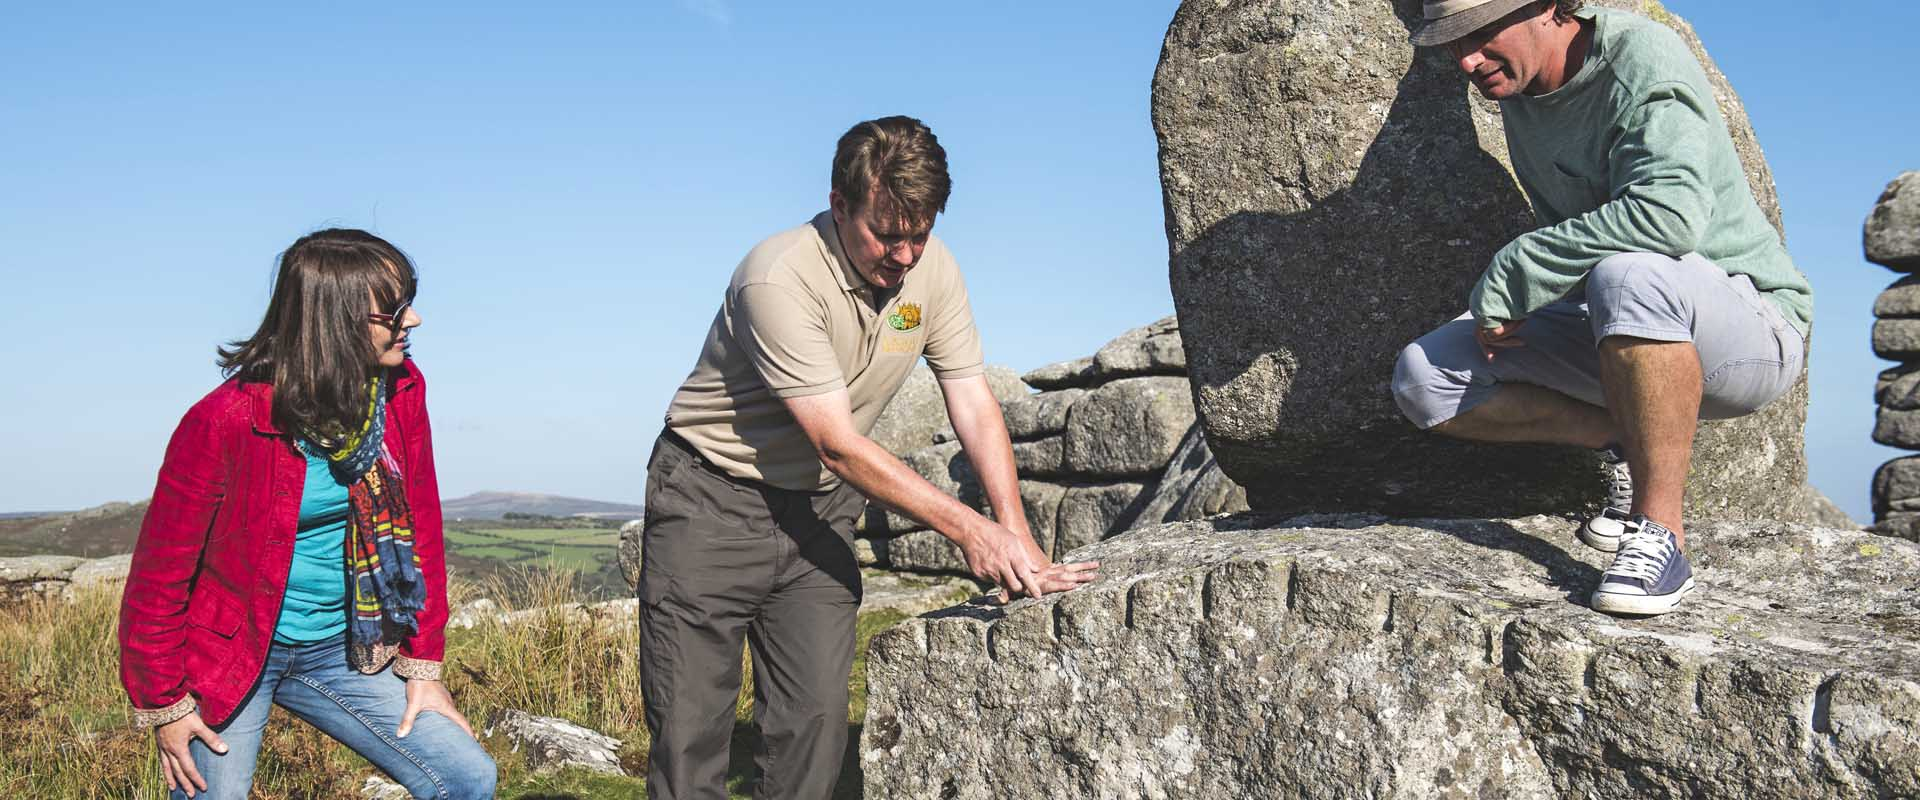 Guests on tour at Combestone Tor on Dartmoor